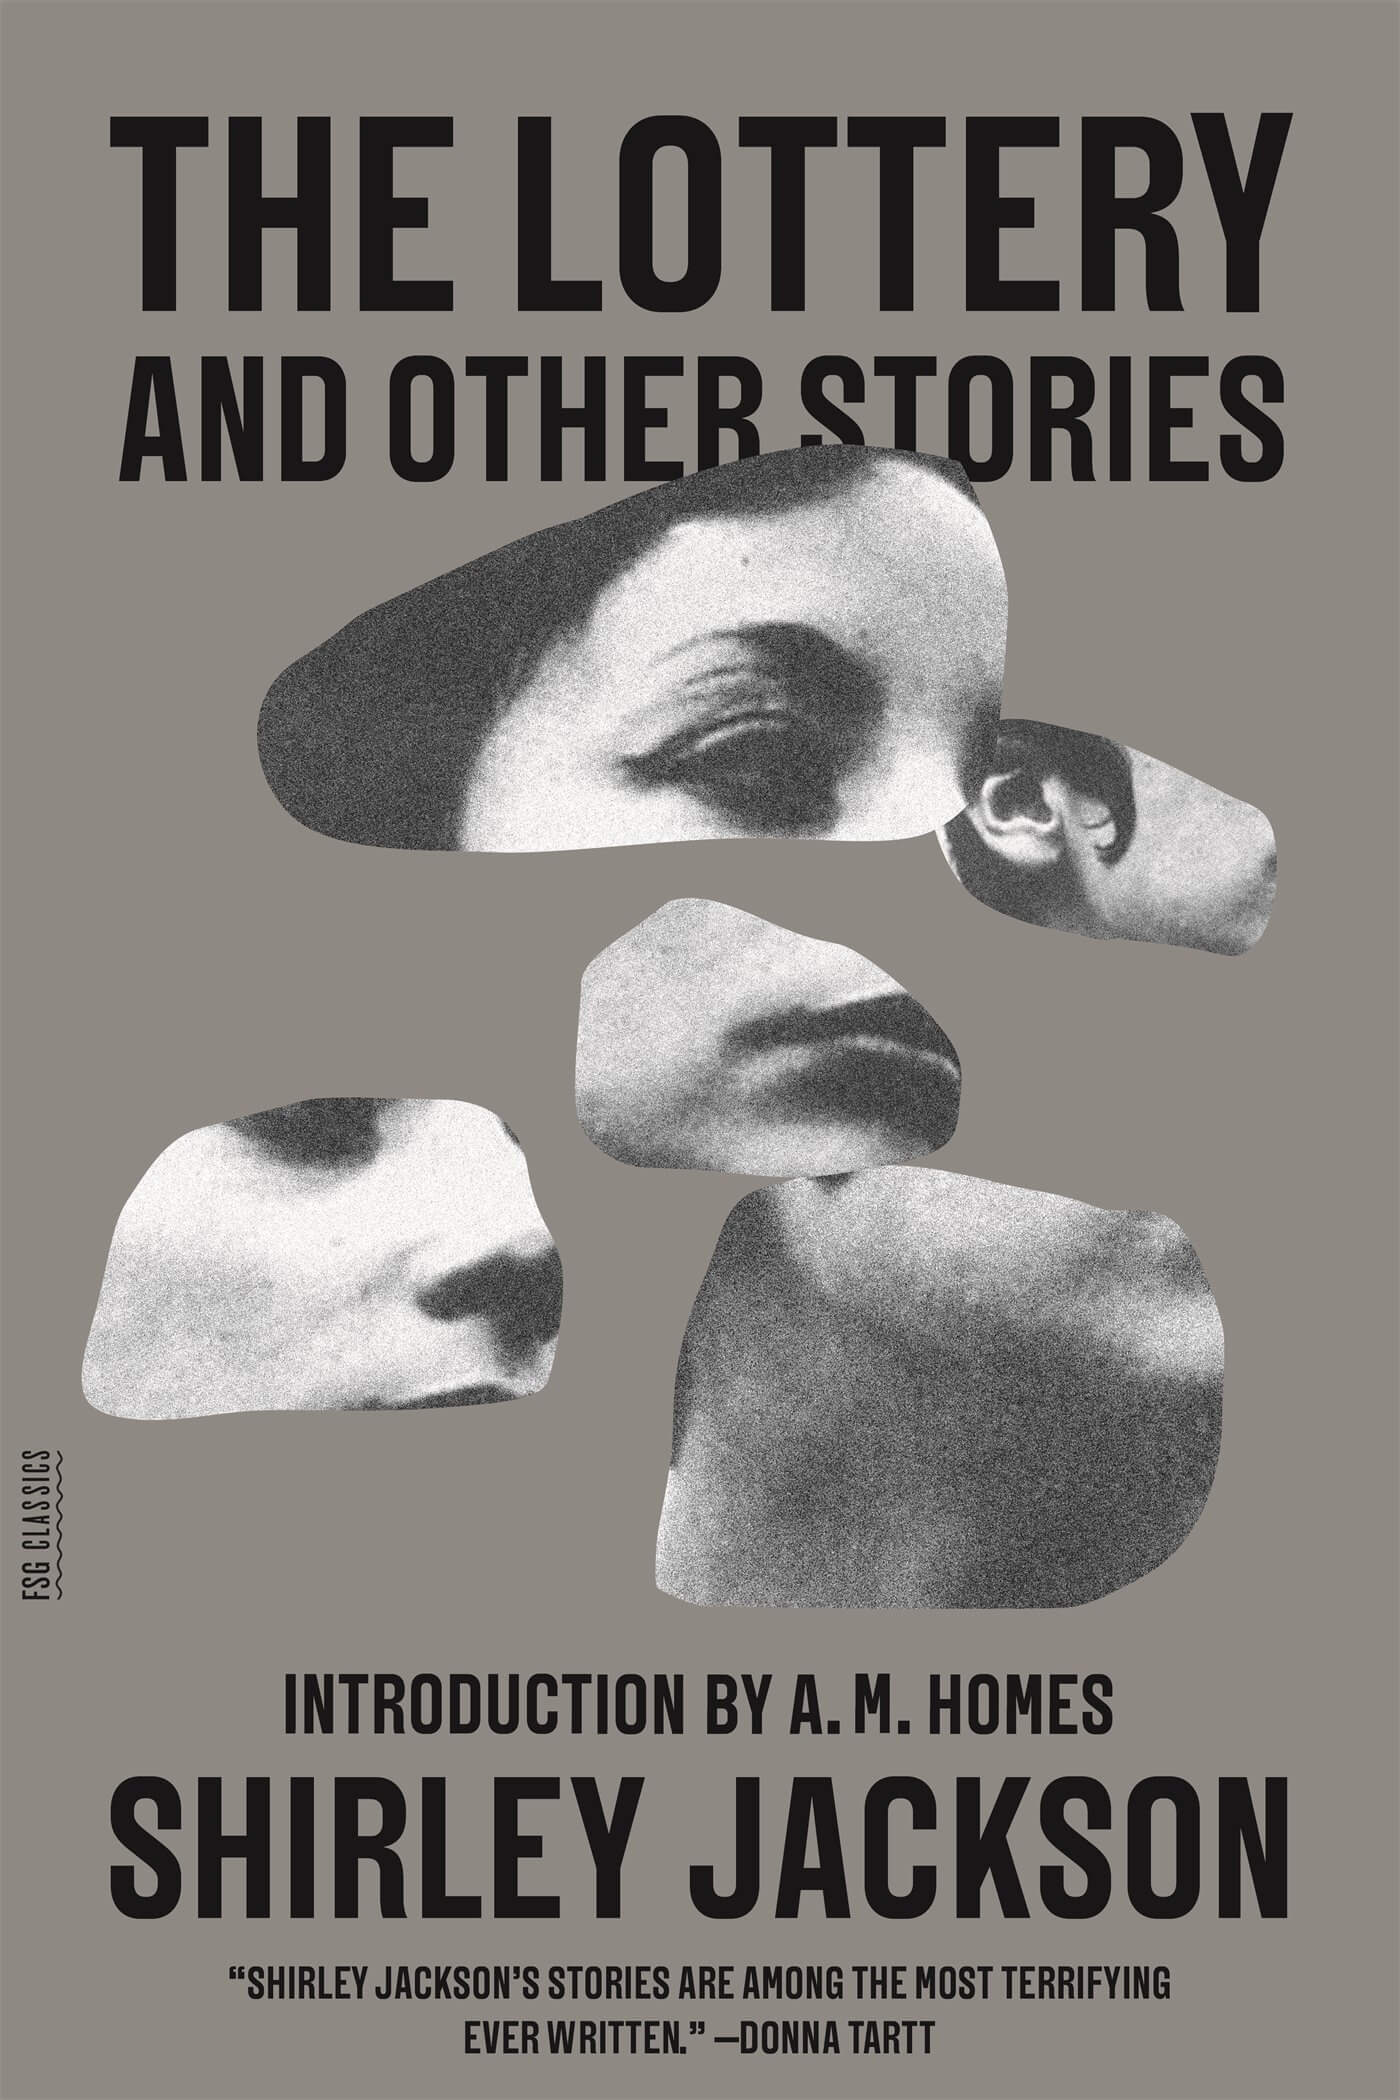 The Lottery and Other Stories book cover image